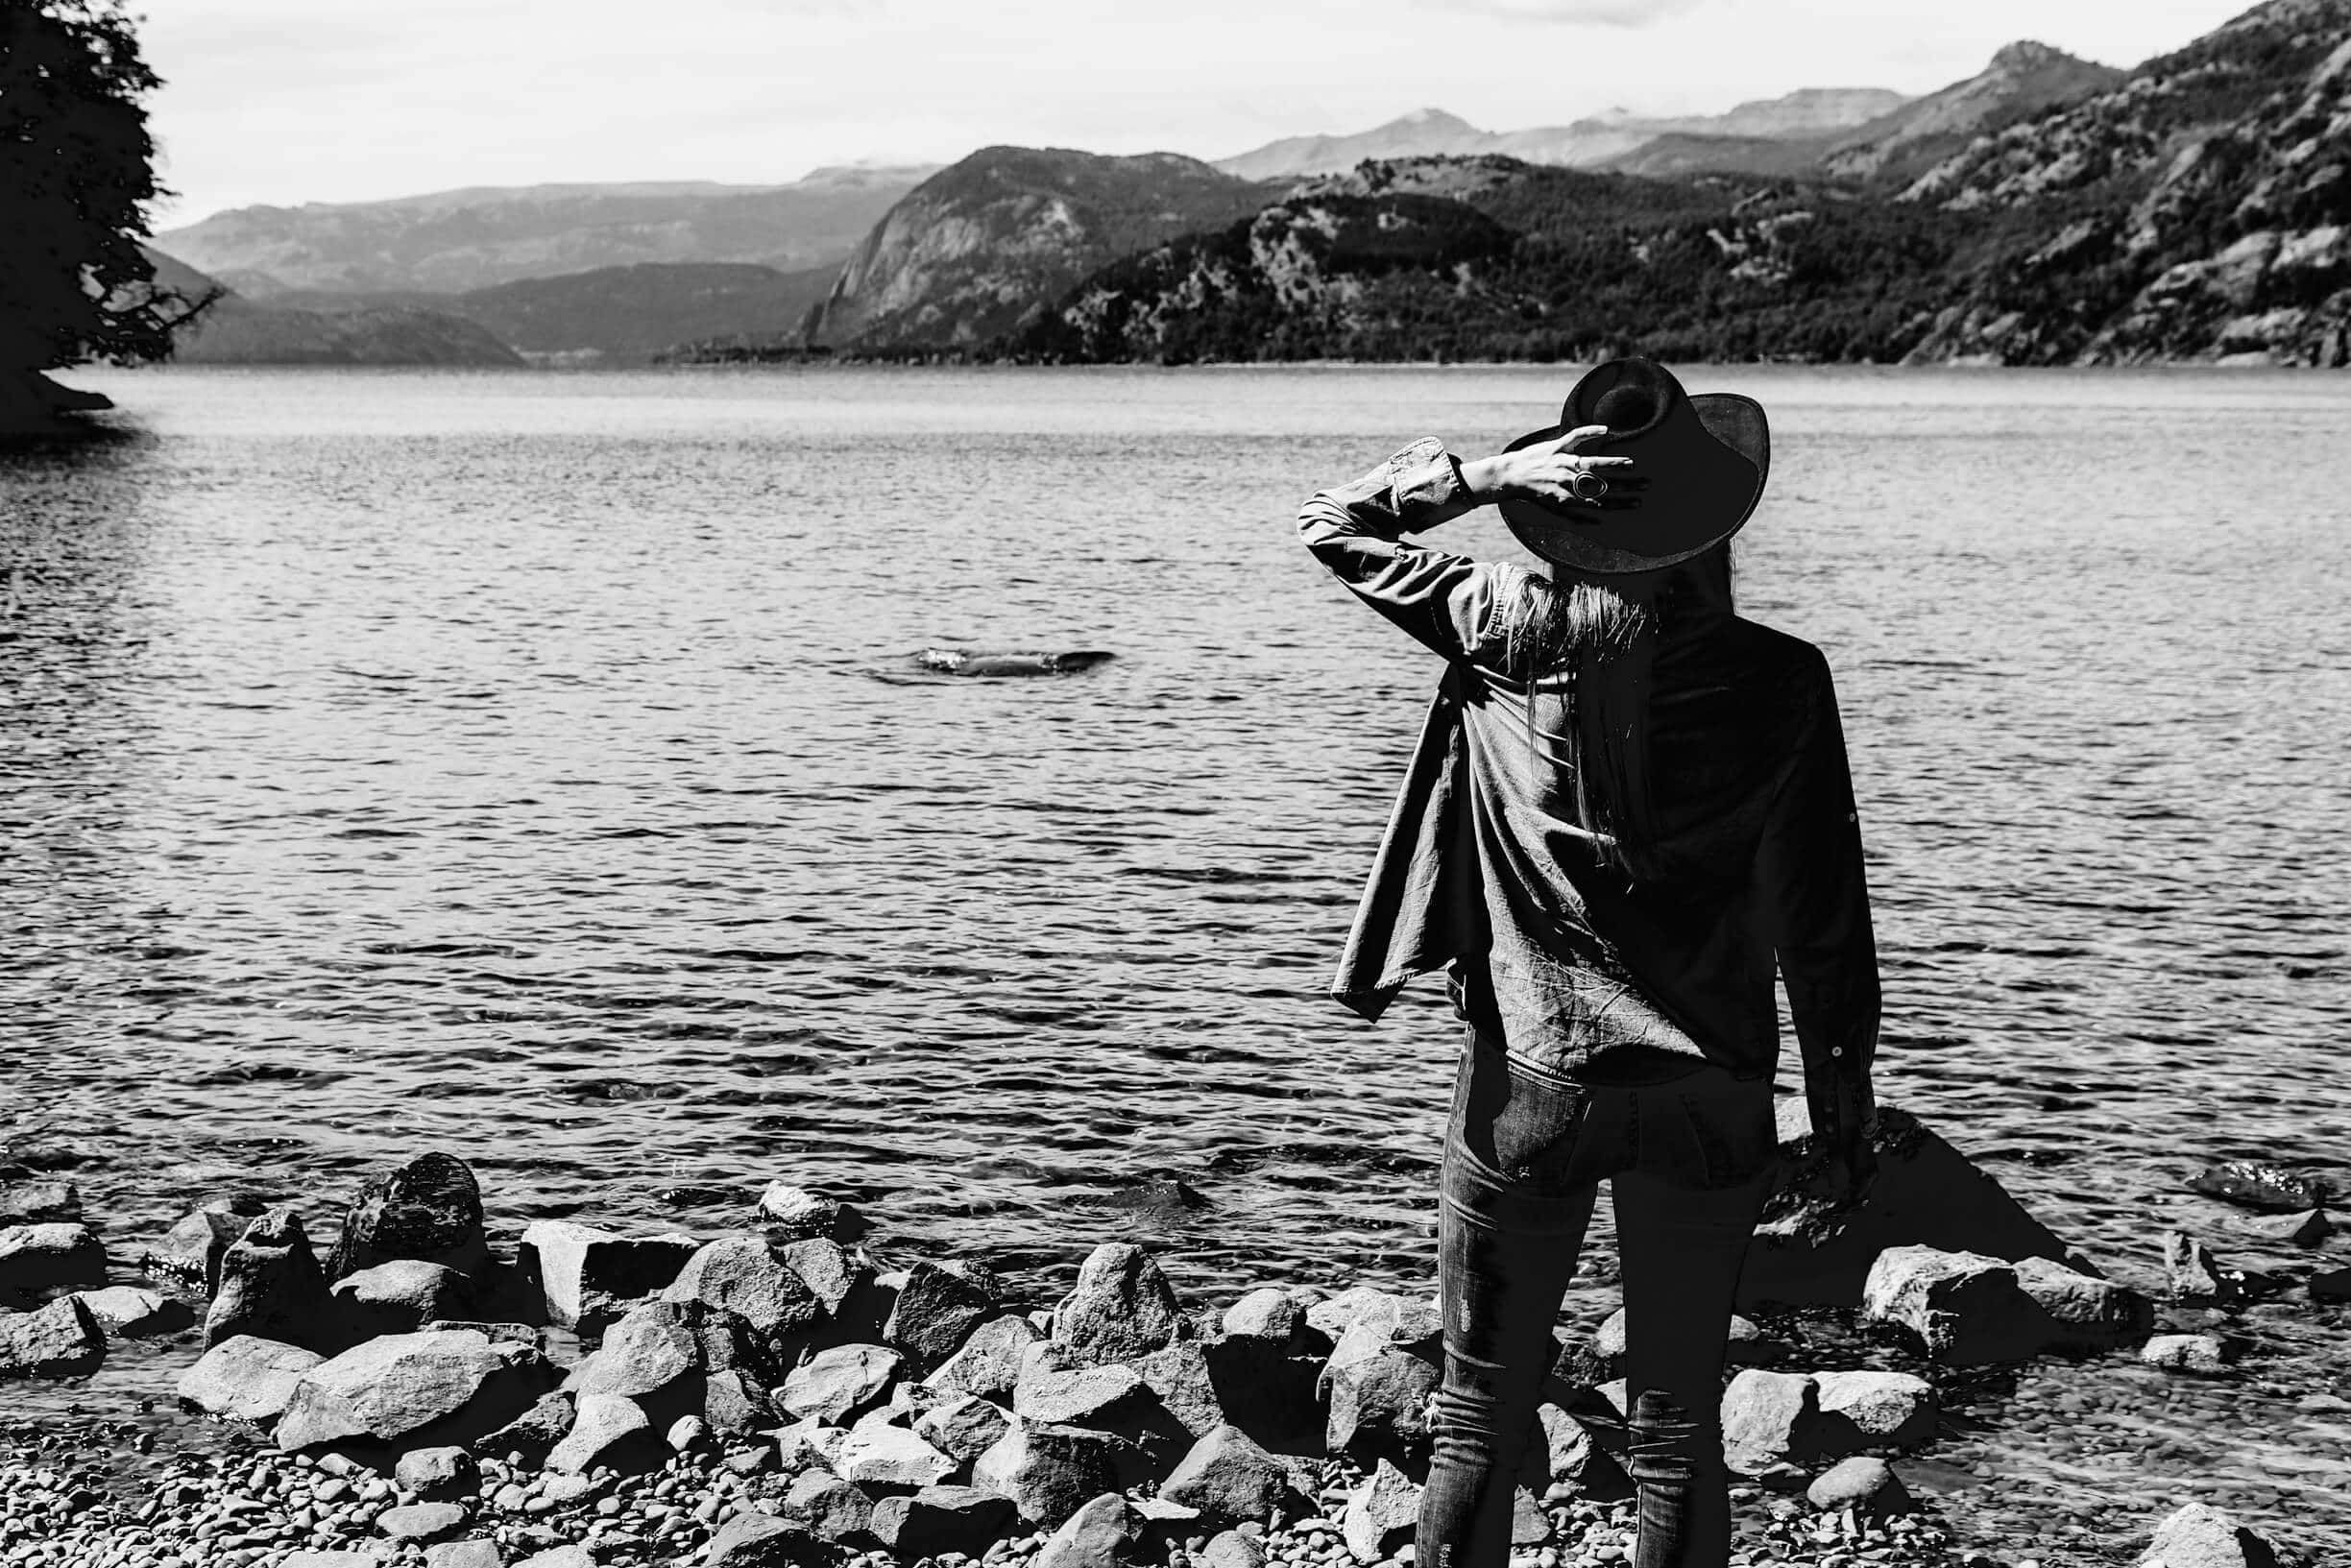 A black and white image of a woman with her back to the camera in front of a lake